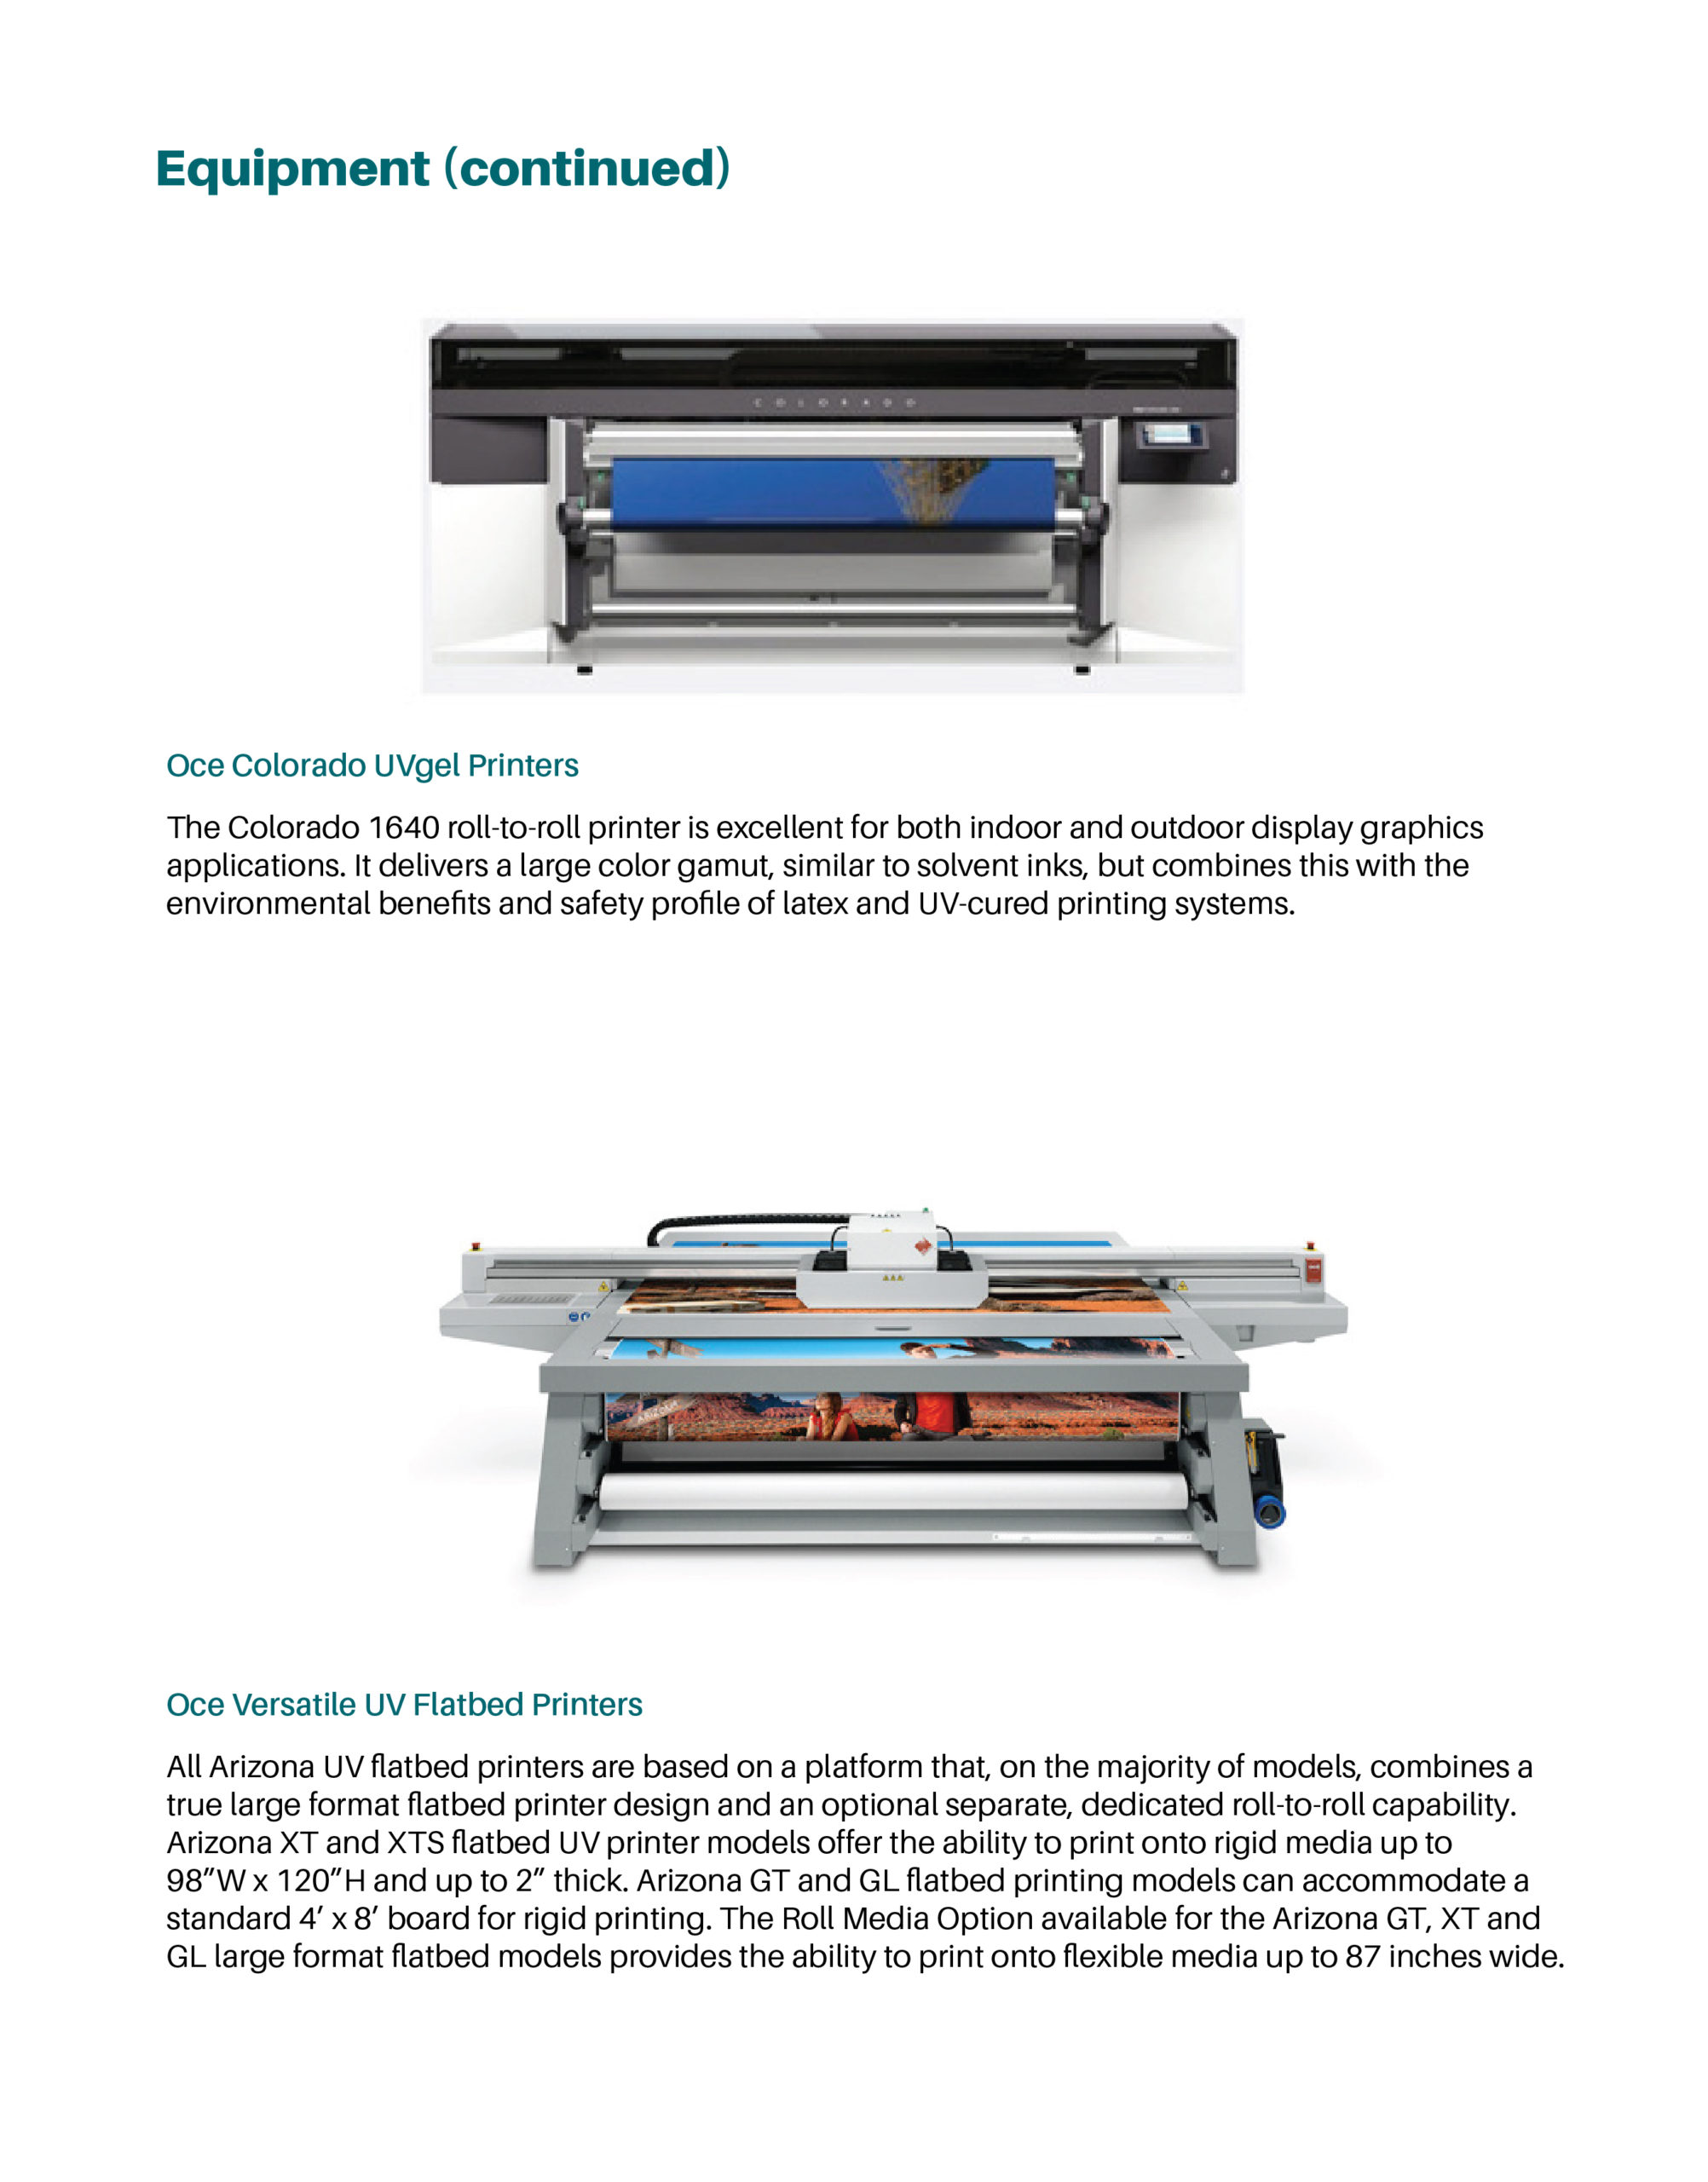 Page featuring product details on large format printers